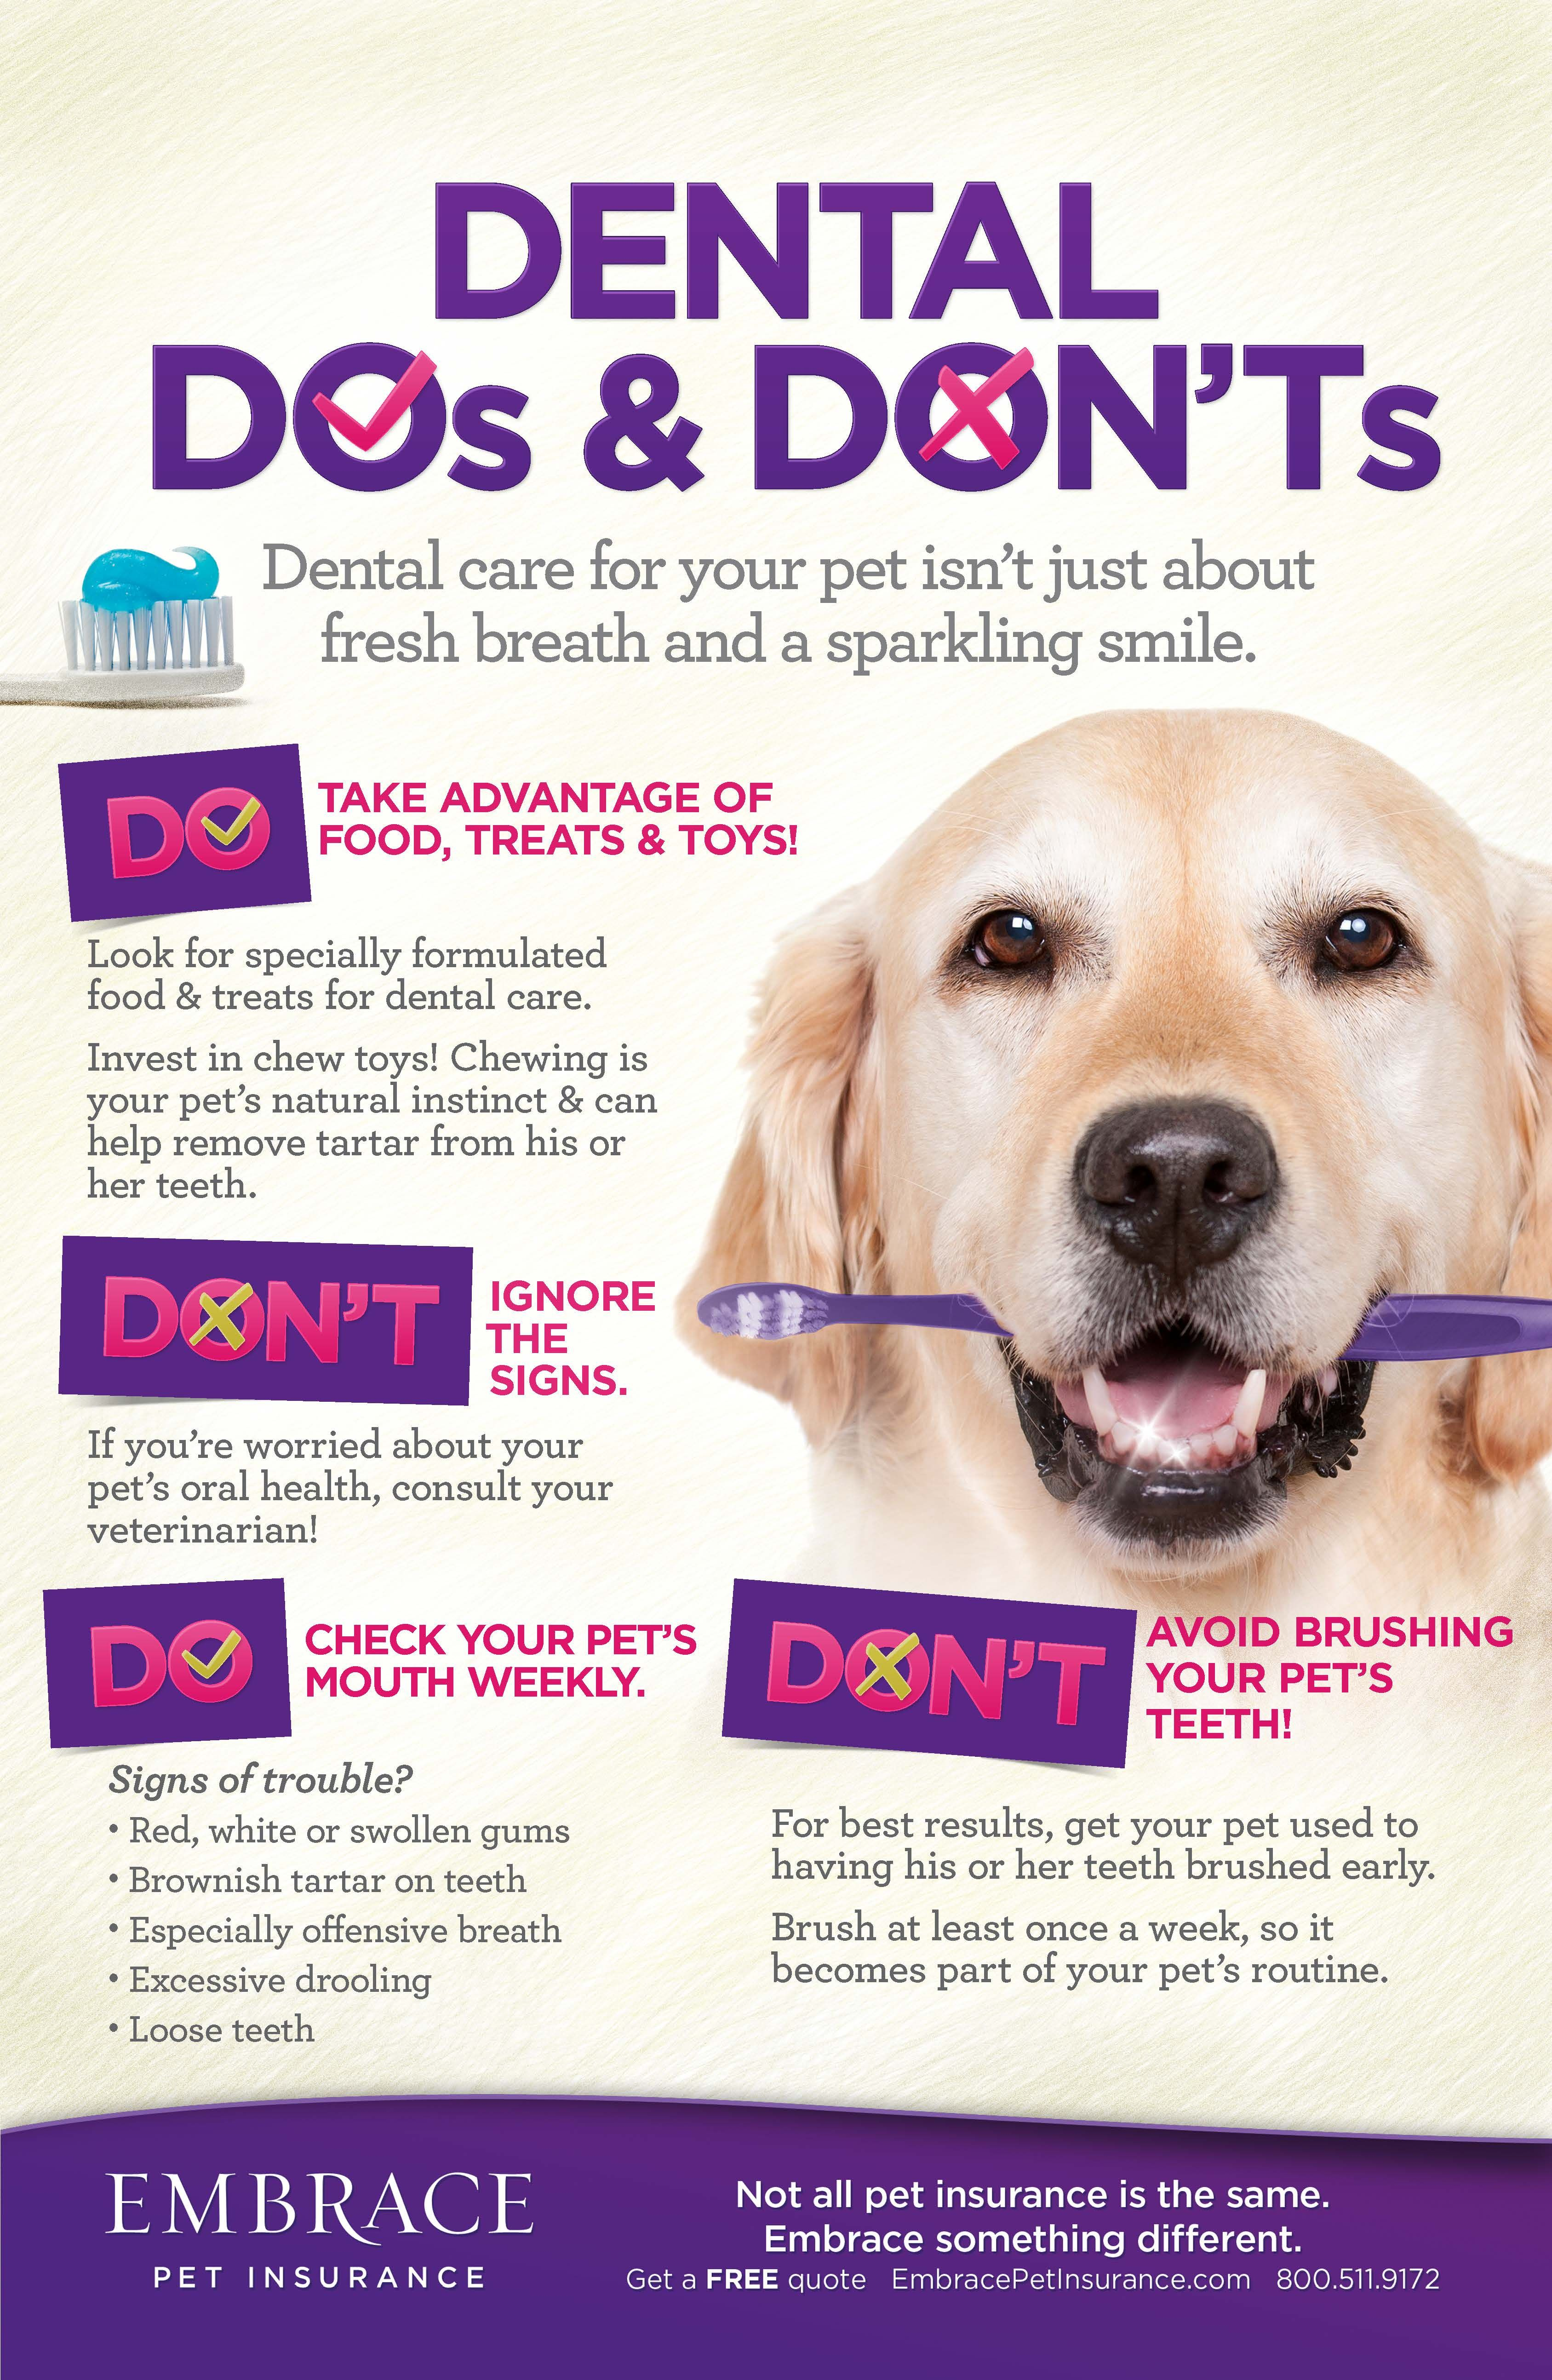 Being diligent about dental care can save you and your pet